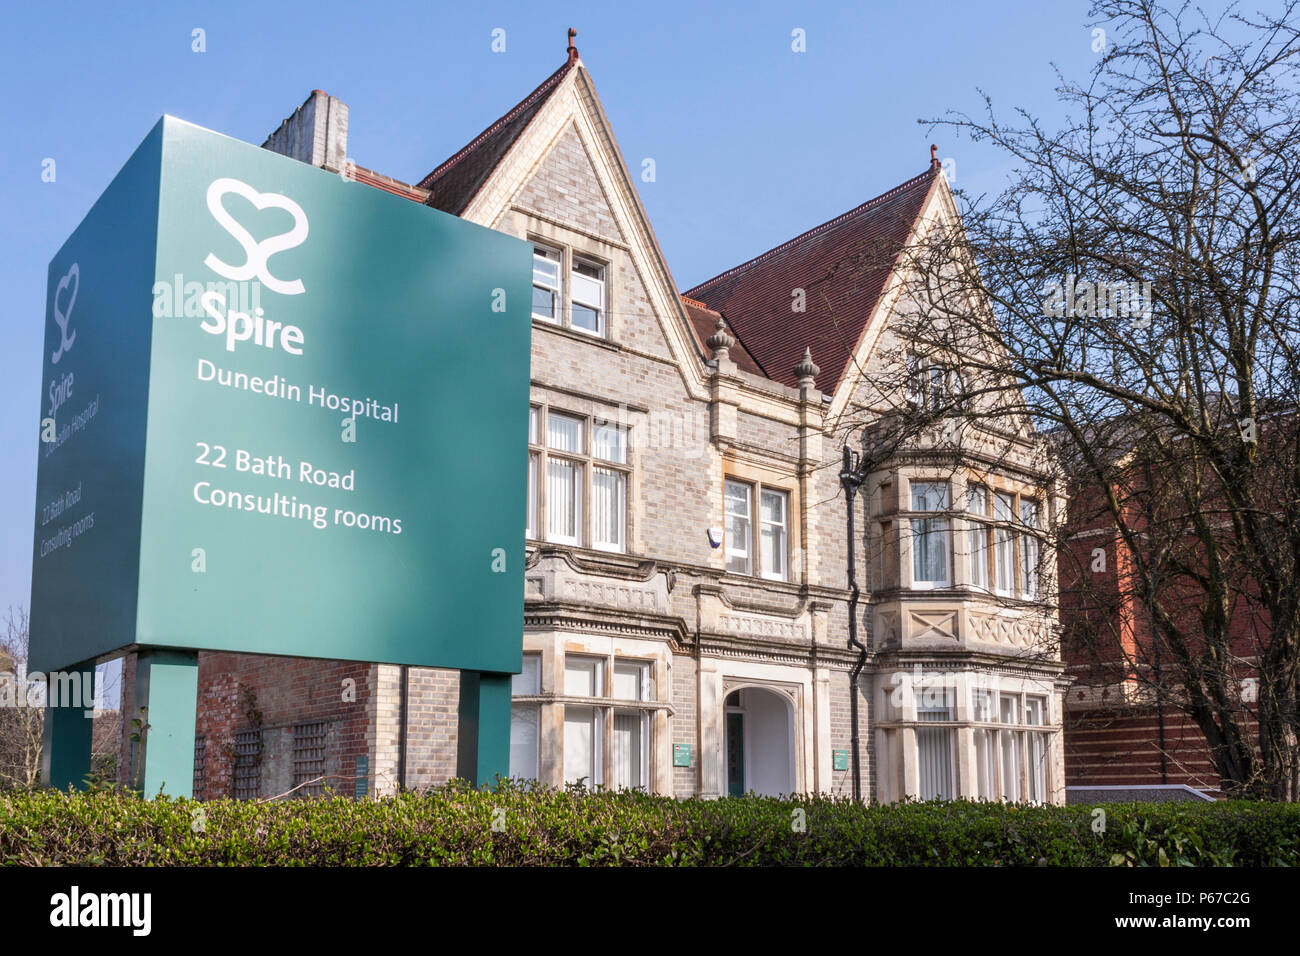 exterior-of-dunedin-hospital-consulting-rooms-a-part-of-spire-healthcare-in-reading-berkshire-england-gb-uk-P67C2G.jpg